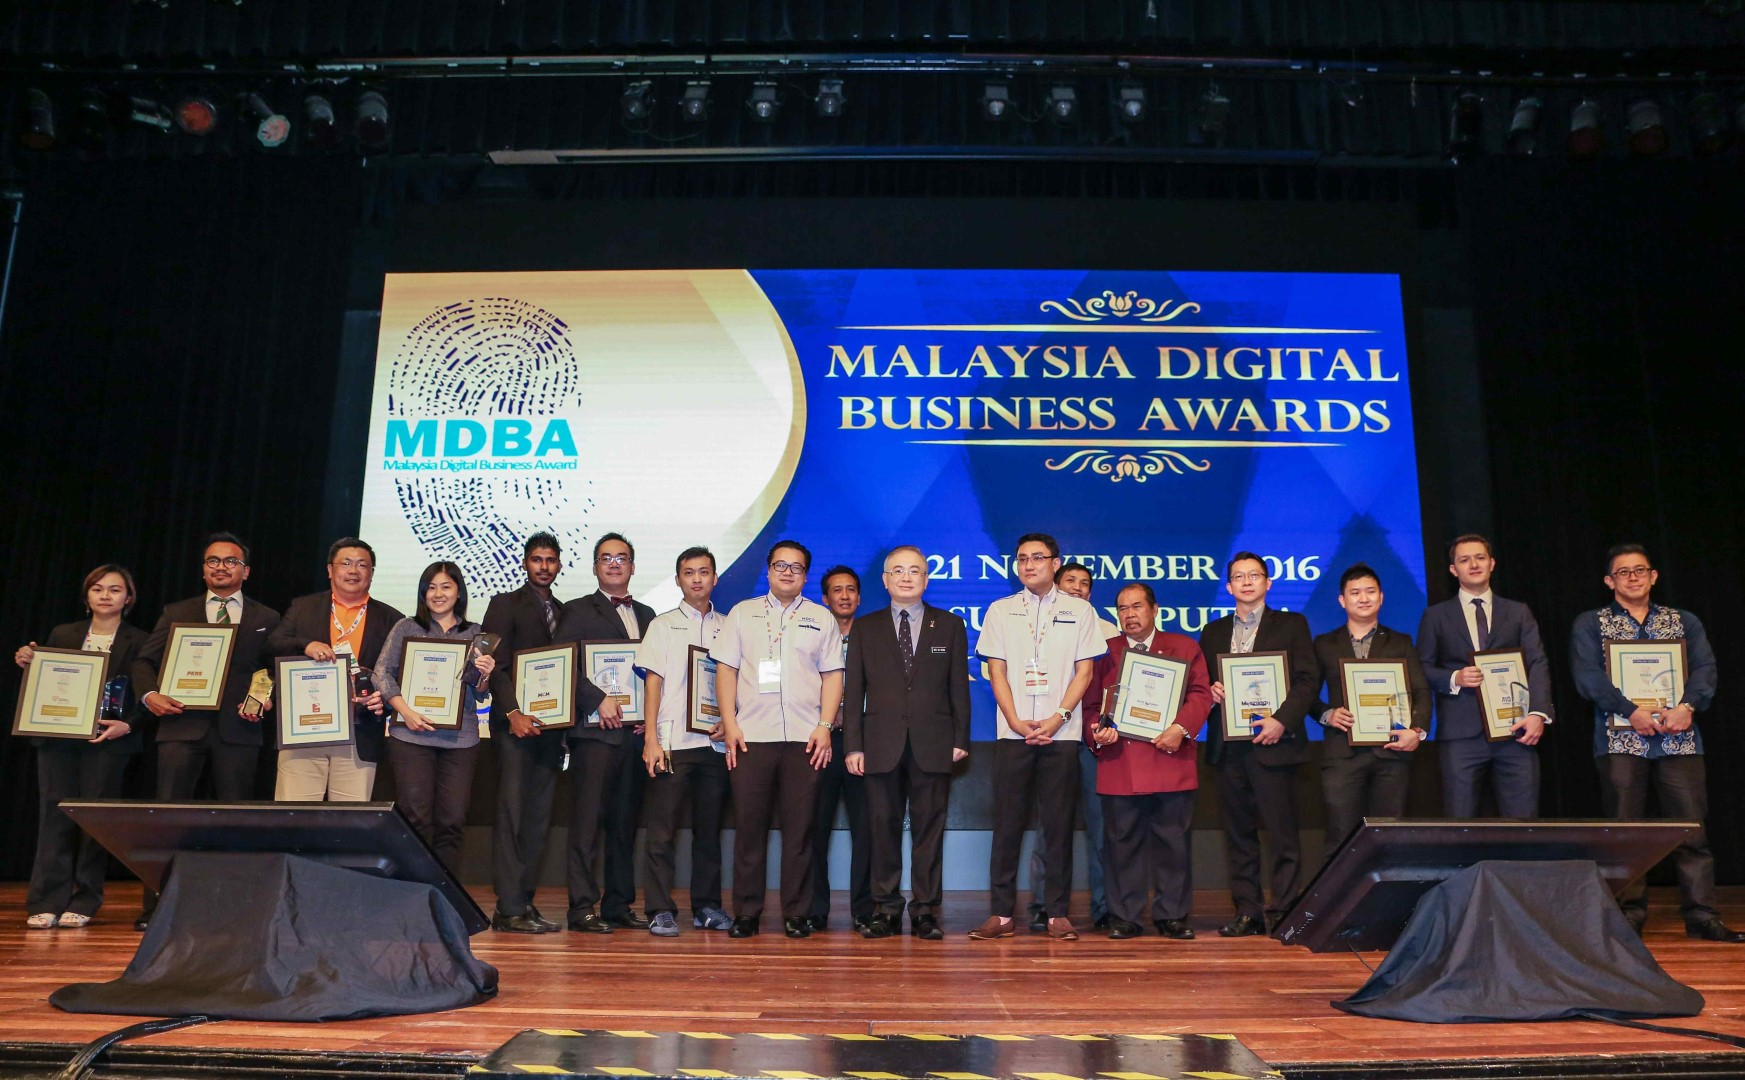 defcon-malaysia-digital-business-awards-iamjaychong-14-large